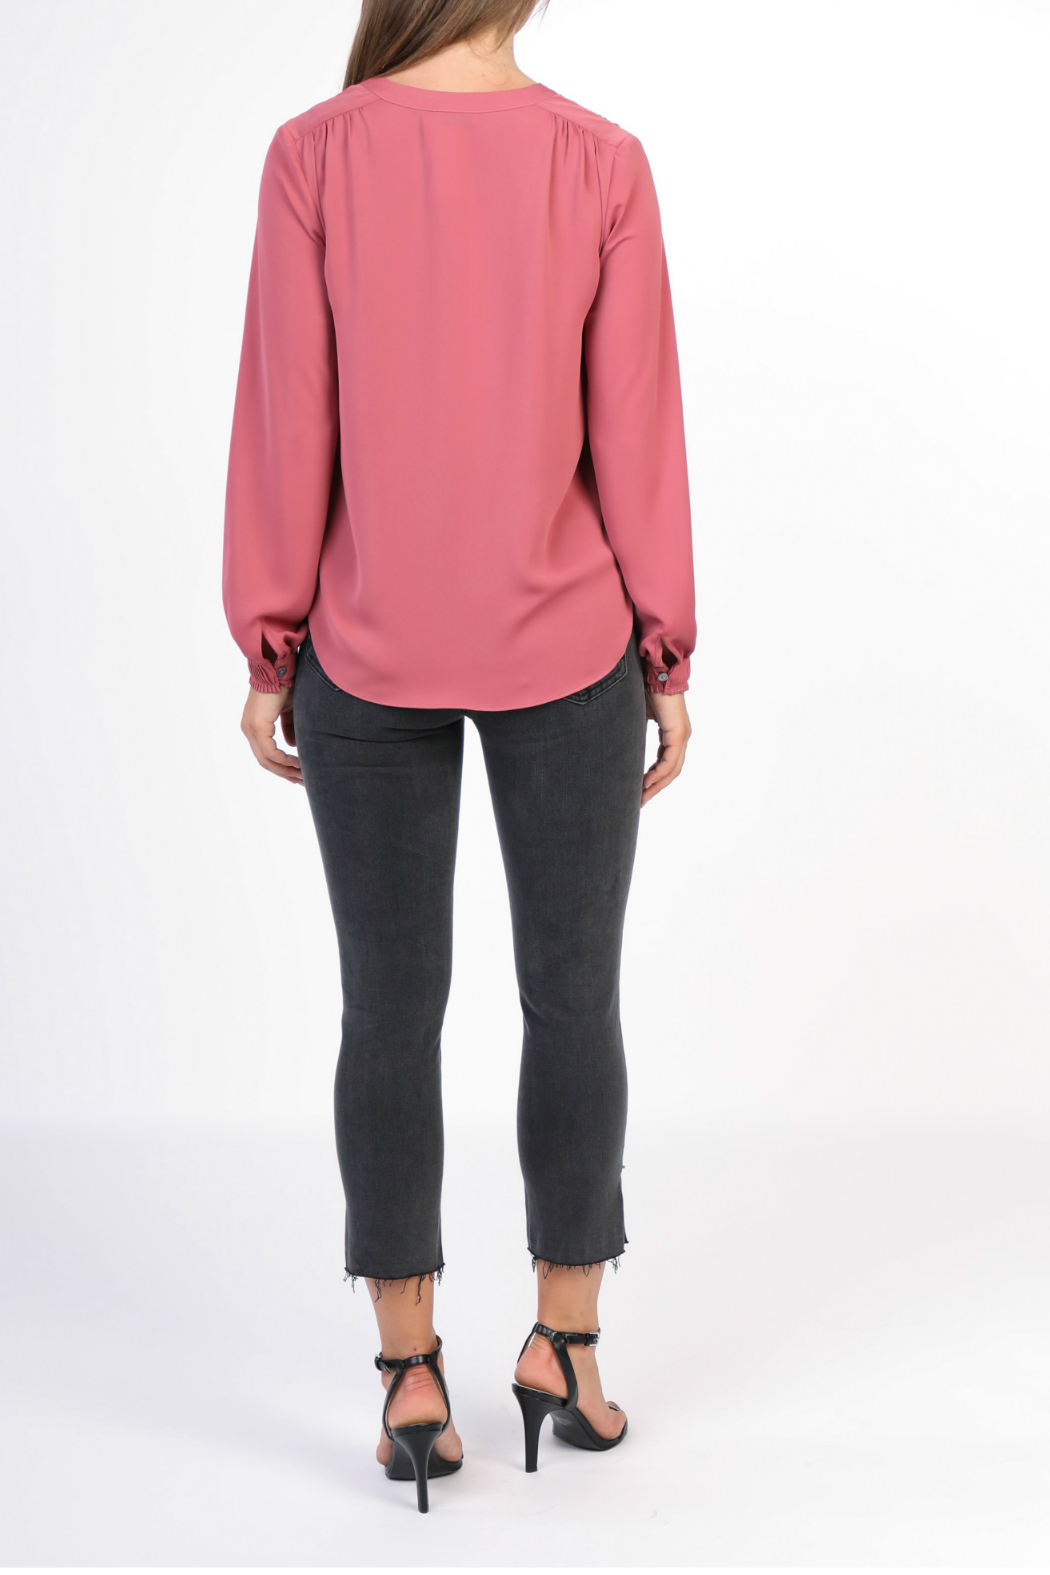 Current Air Long sleeve v-neck top - Front Full Image